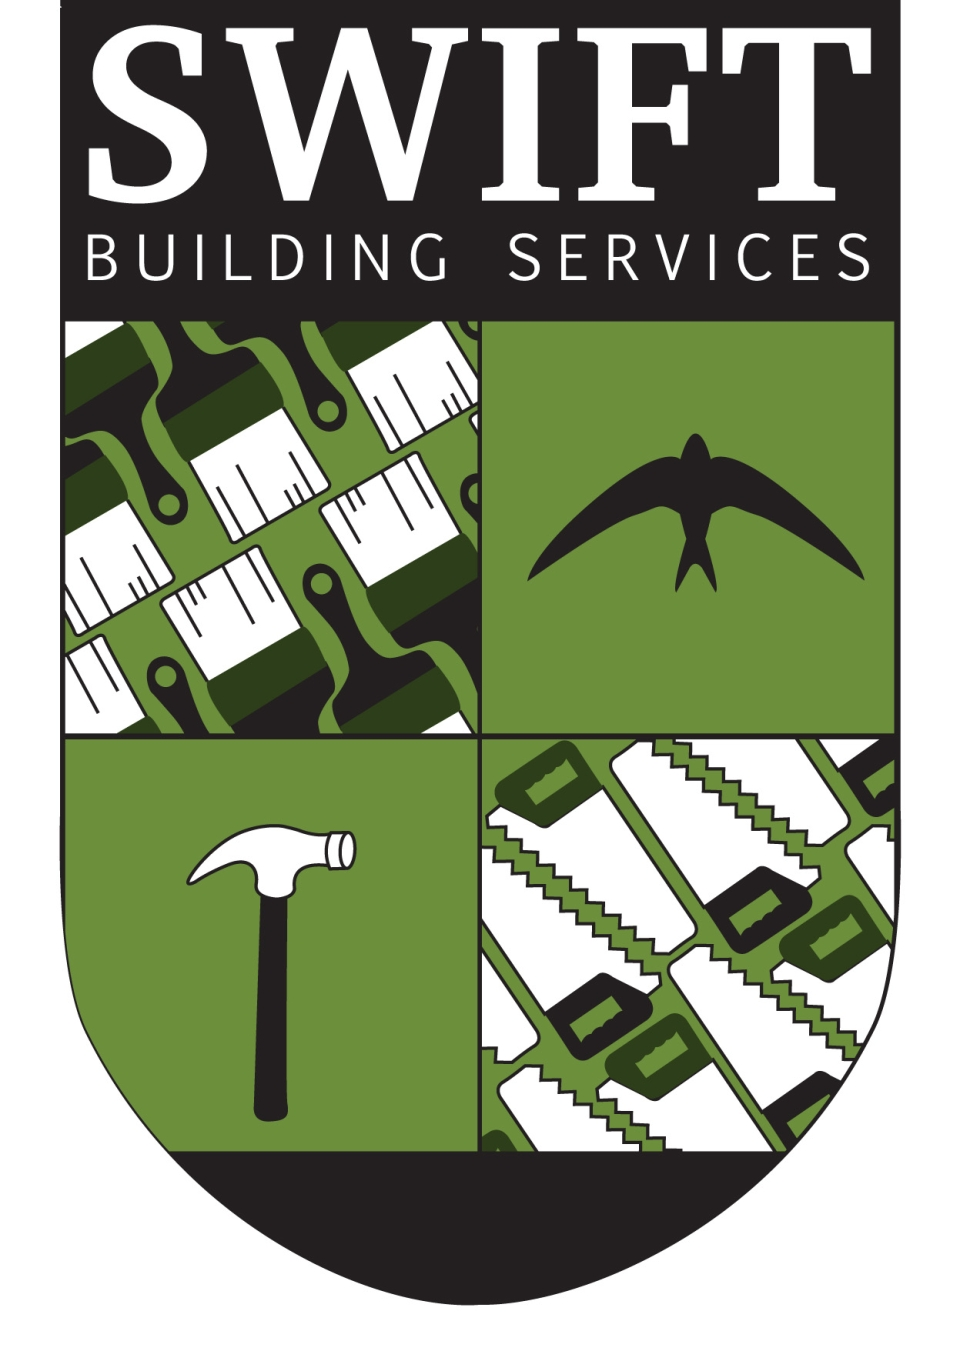 Swift Building Services ltd